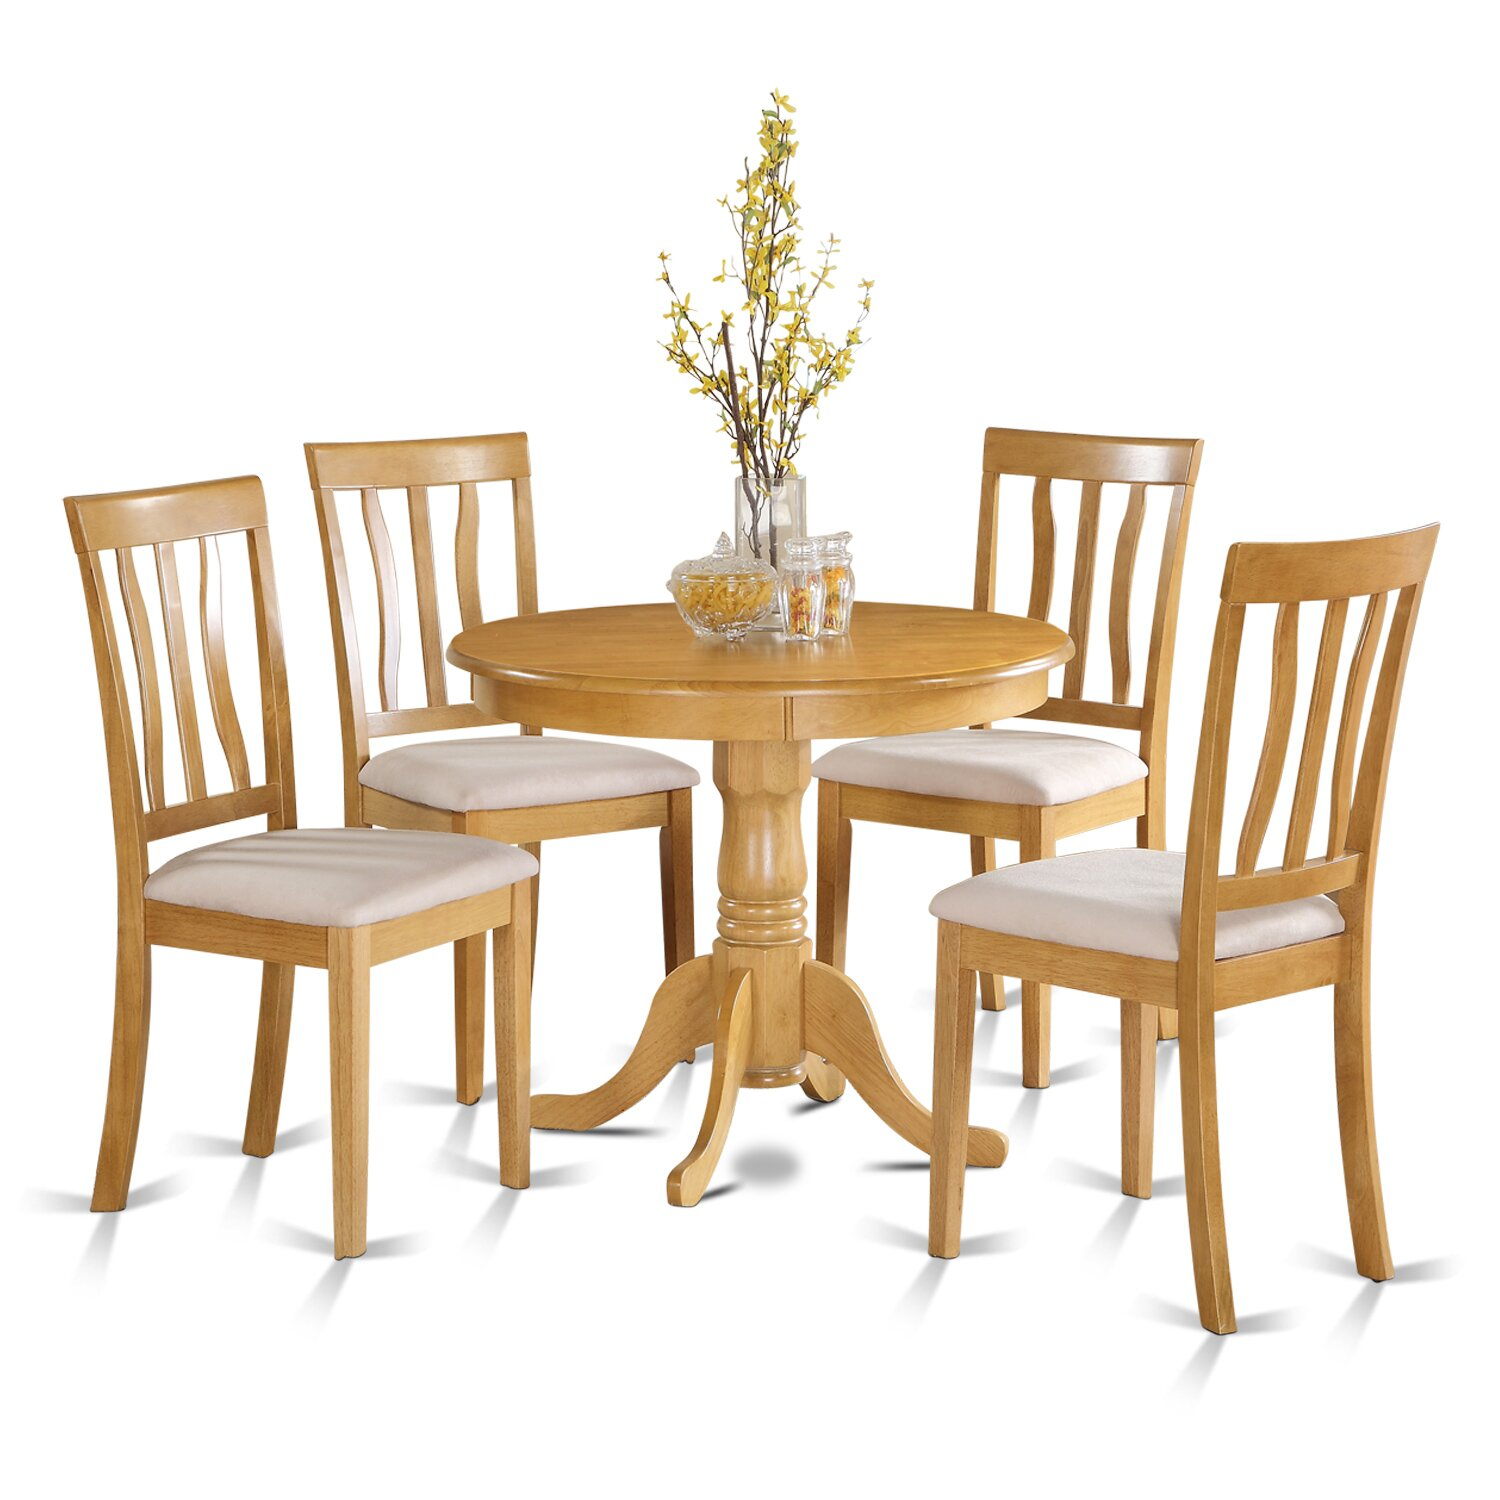 Wooden importers 5 piece dining set reviews wayfair for Small table and stool set